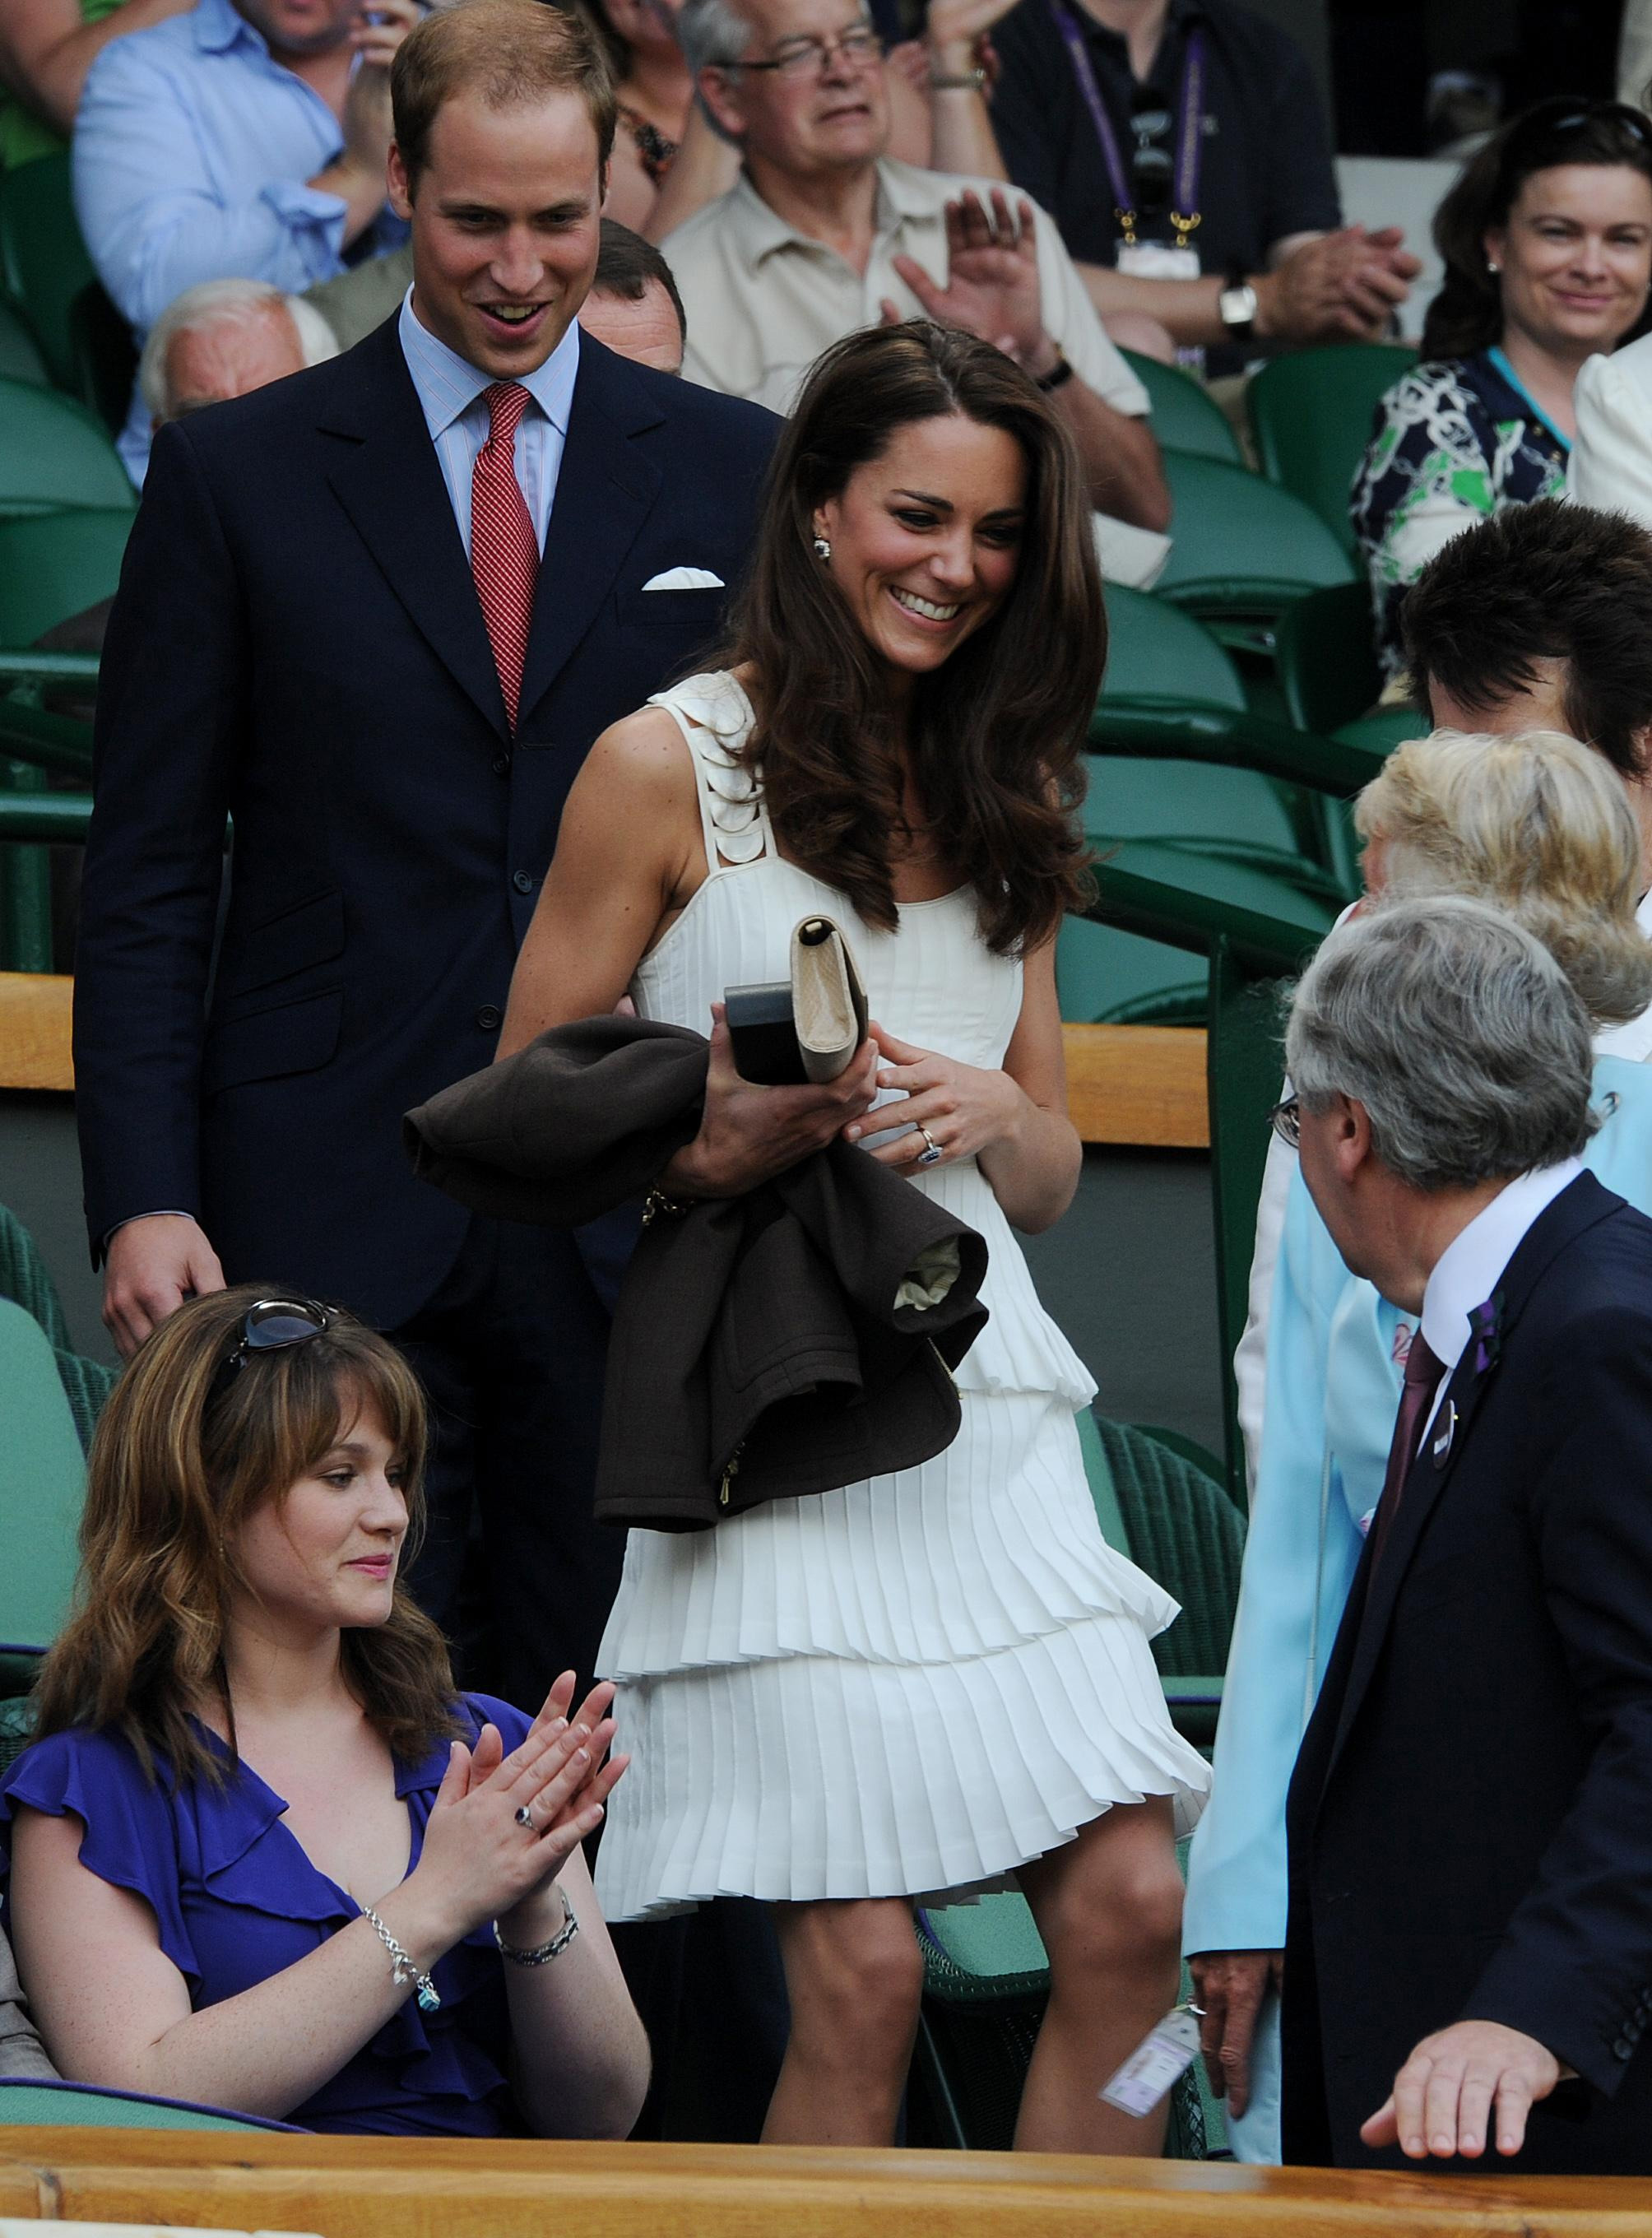 <strong>Tennis Style</strong>                                   The Duchess wore a sleeveless, tiered white dress to attend the match between Andy Murray and Richard Gasquet at Wimbledon on June 27, 2011.